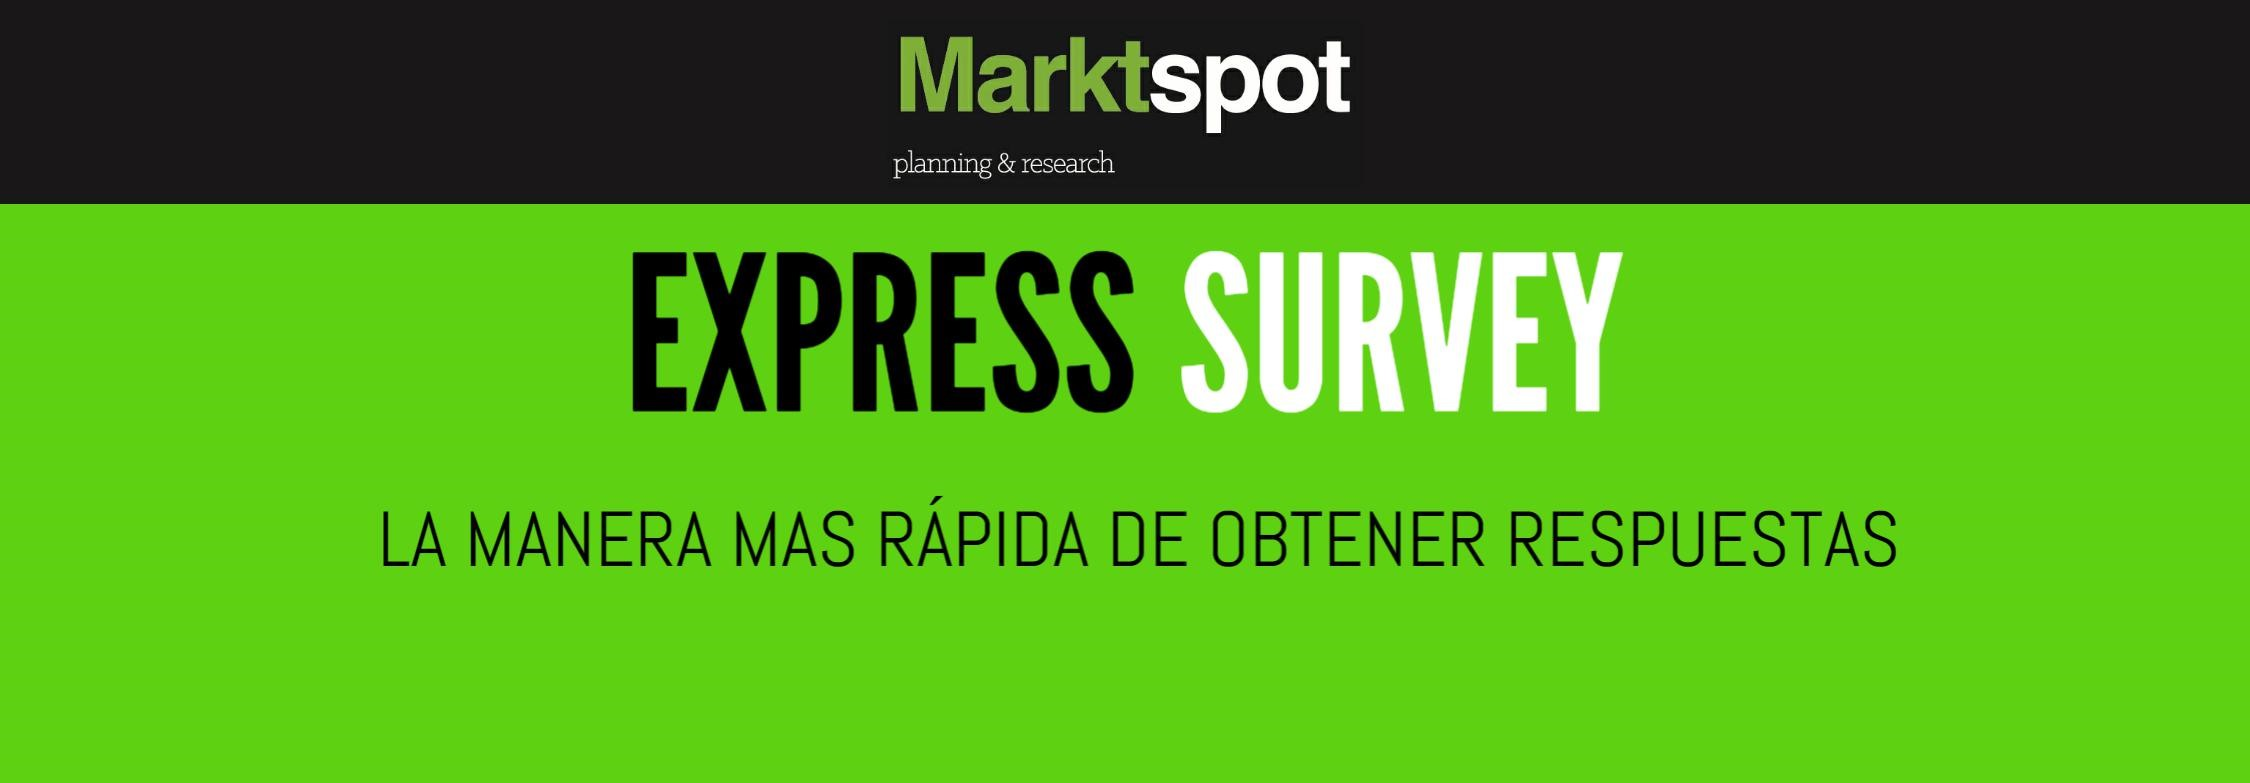 EXPRESS SURVEY- Agencia de Encuestas Express